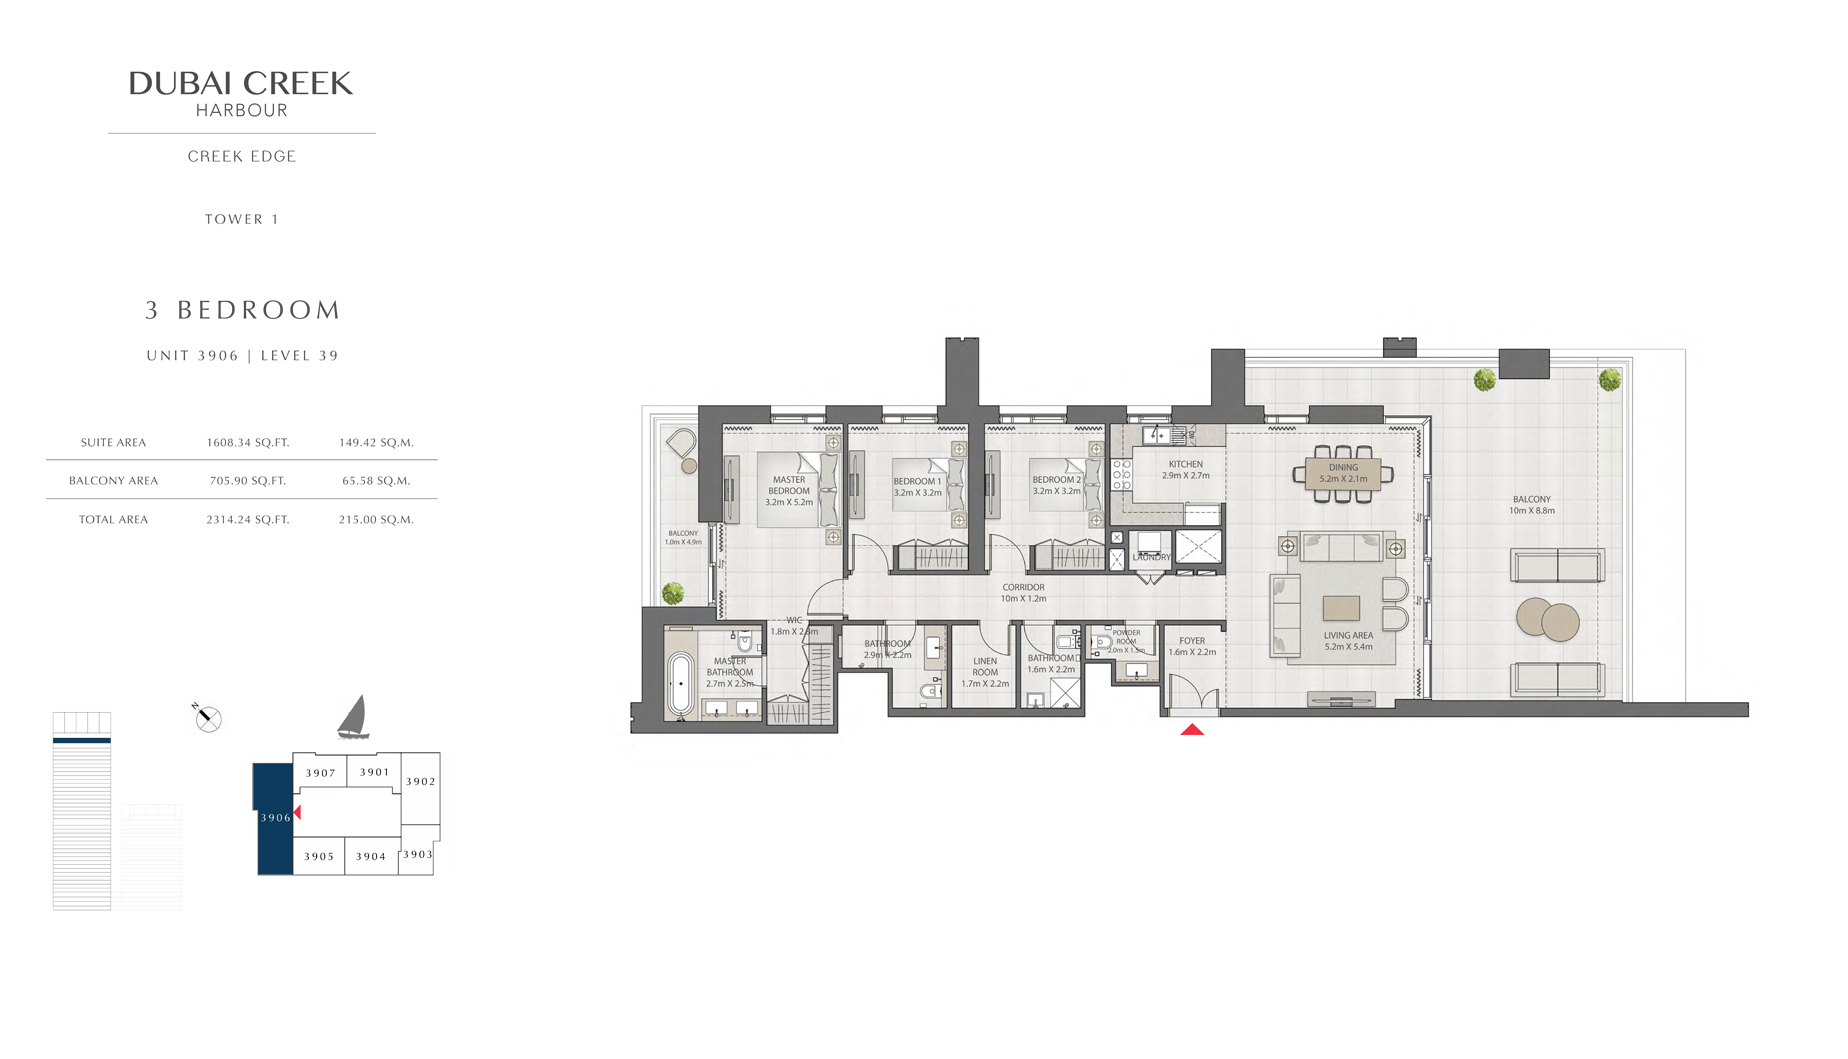 3 Bedroom Tower 1 Unit 3906 Level 39 Size 2314 sq.ft